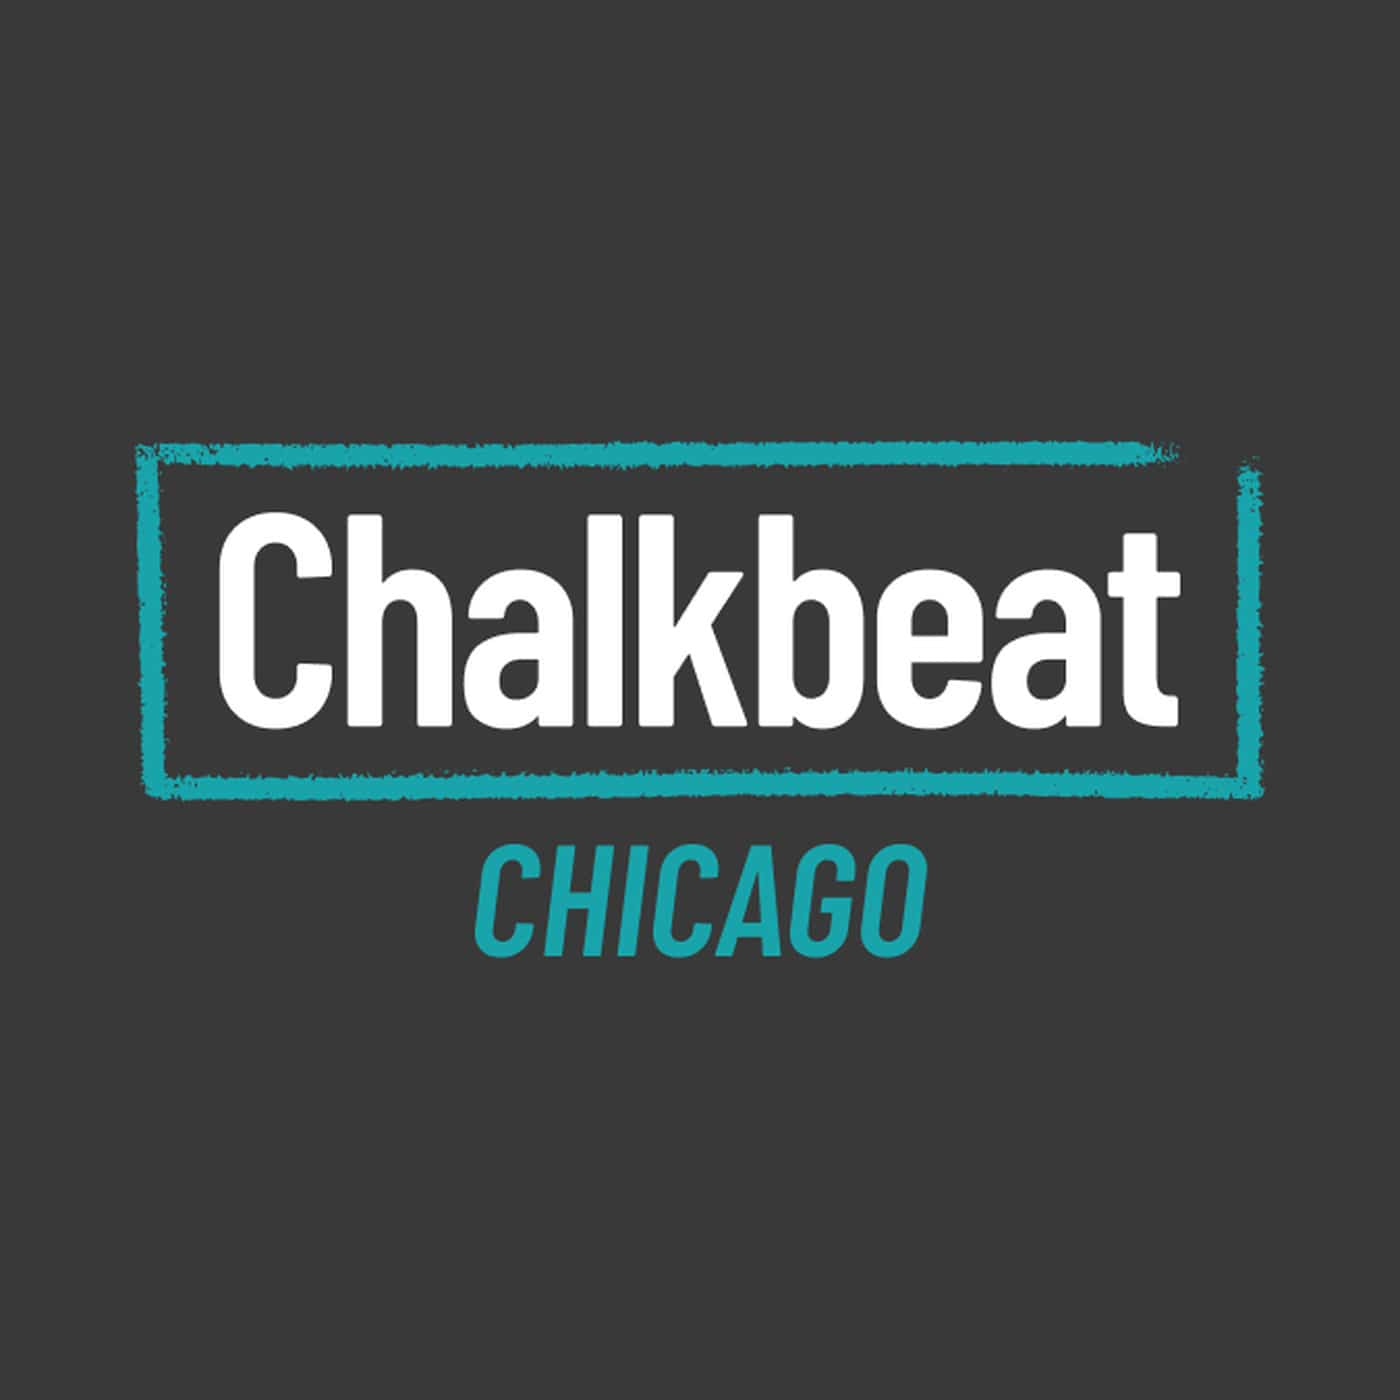 Chalkbeat, July 28, 2020: Can Chicago Find Its Missing Students for Fall?